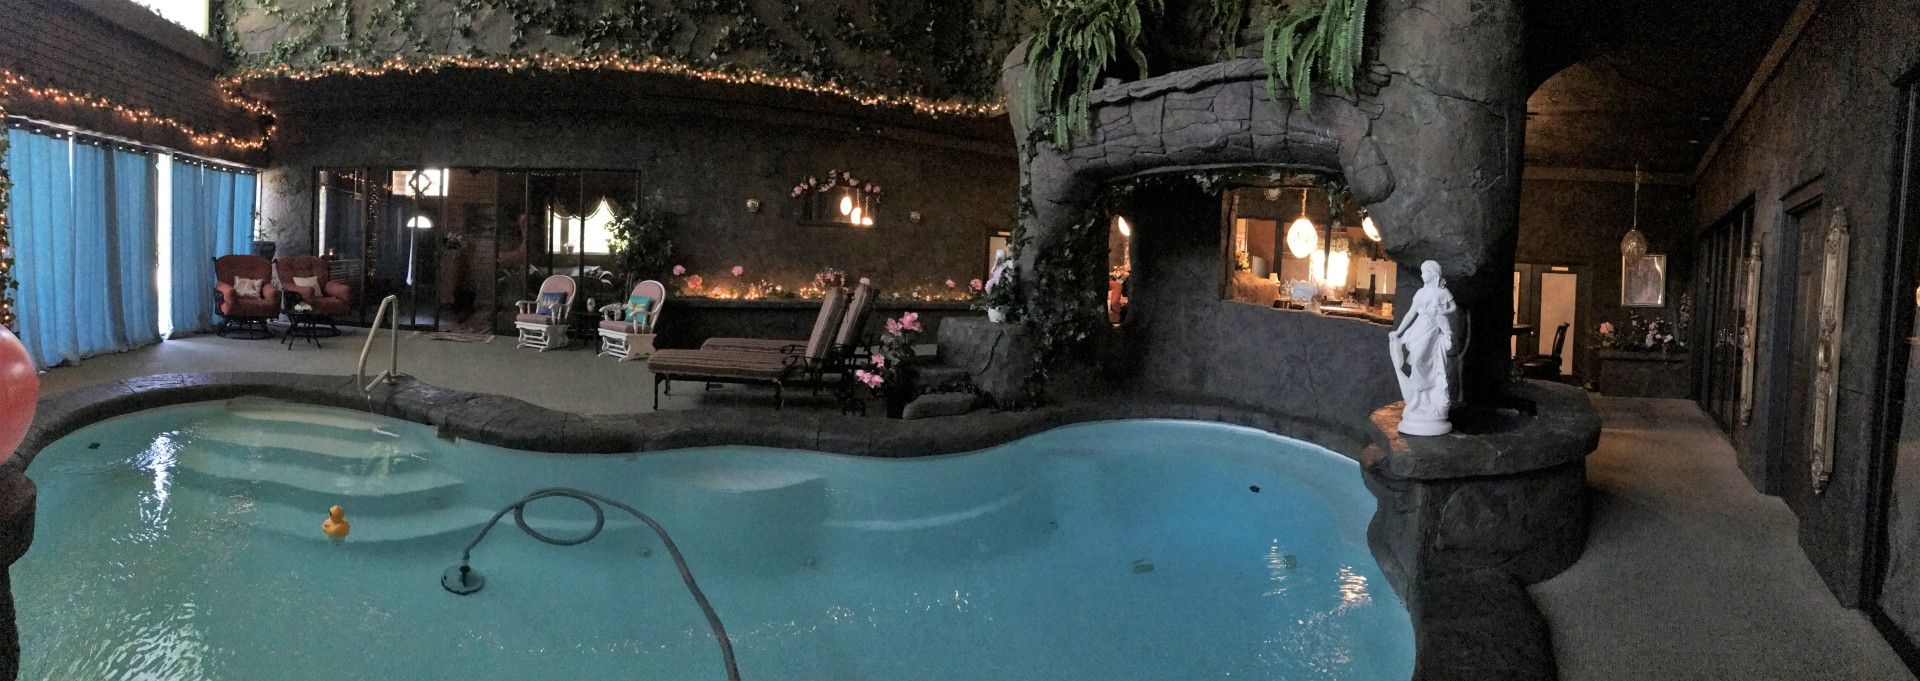 Heated Indoor Pool Hotel Homosassa